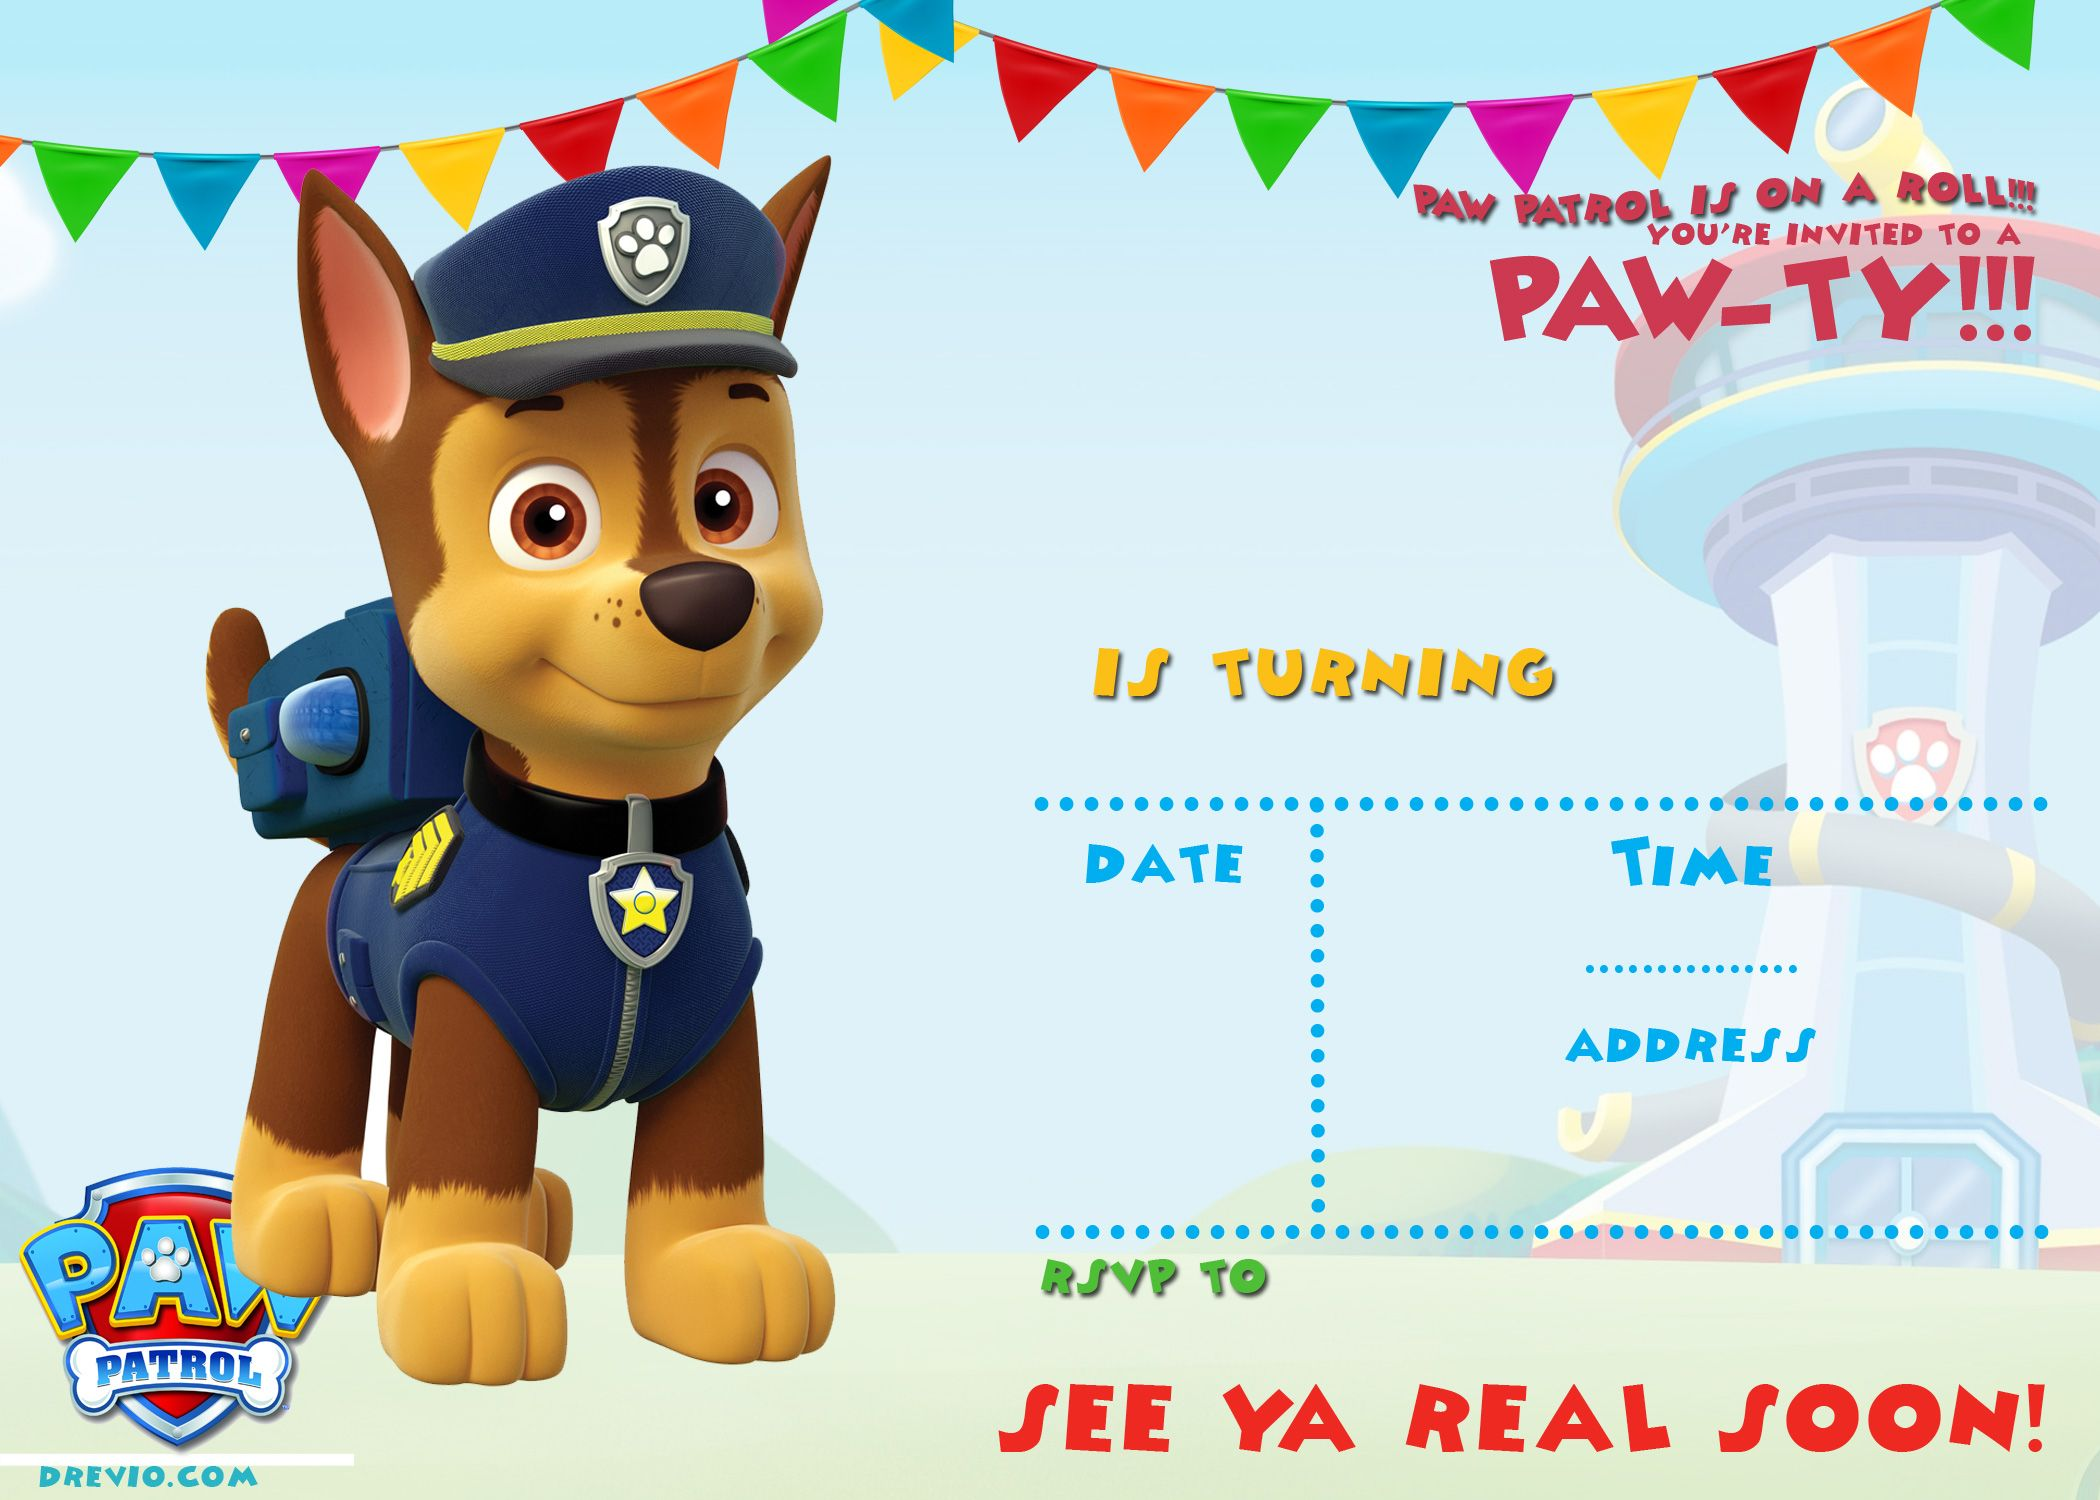 picture about Printable Paw Patrol Invitations referred to as Absolutely free Printable Paw Patrol Invitation Template - All